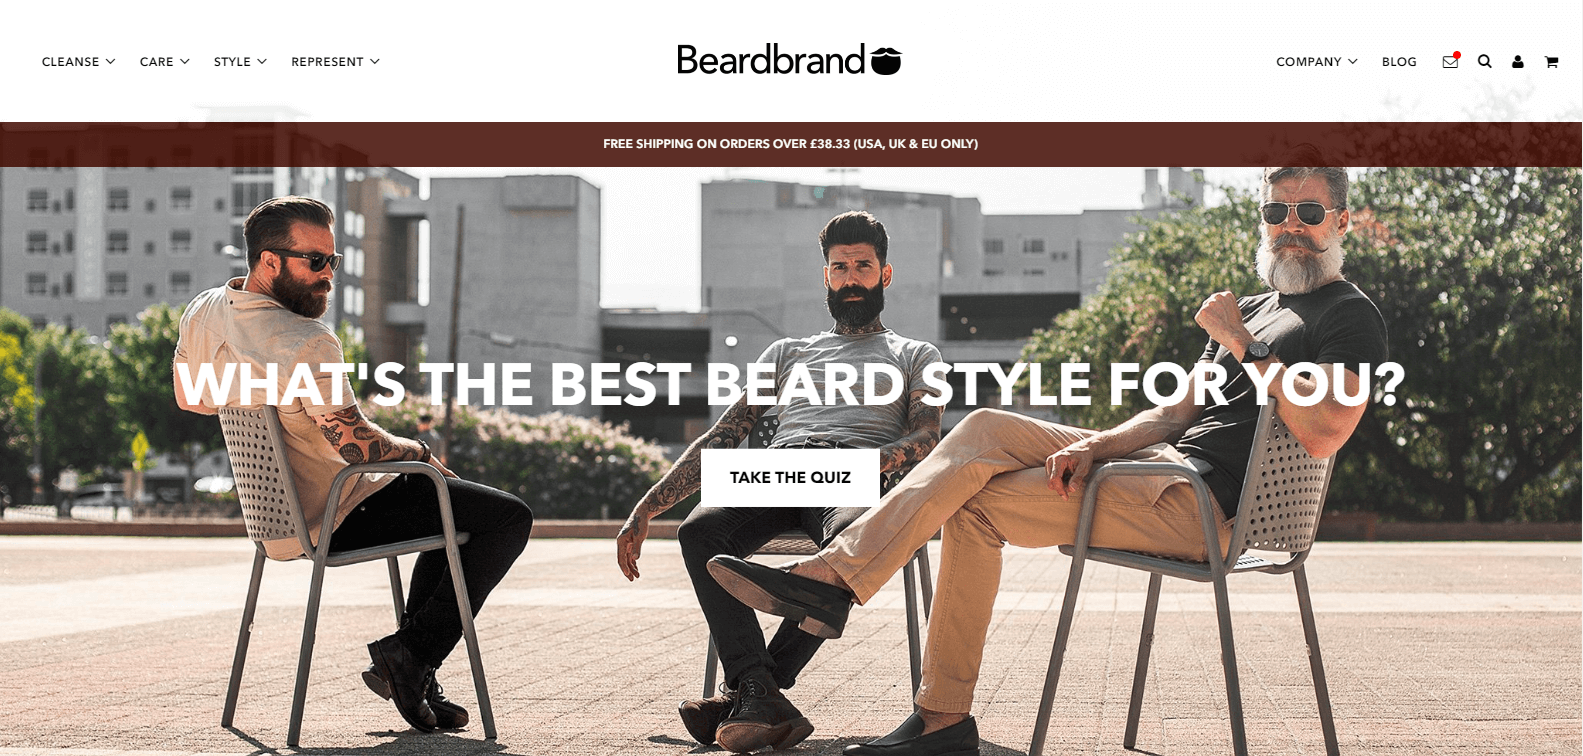 Beardbrand // Video-Analisi CRO di un Ecommerce